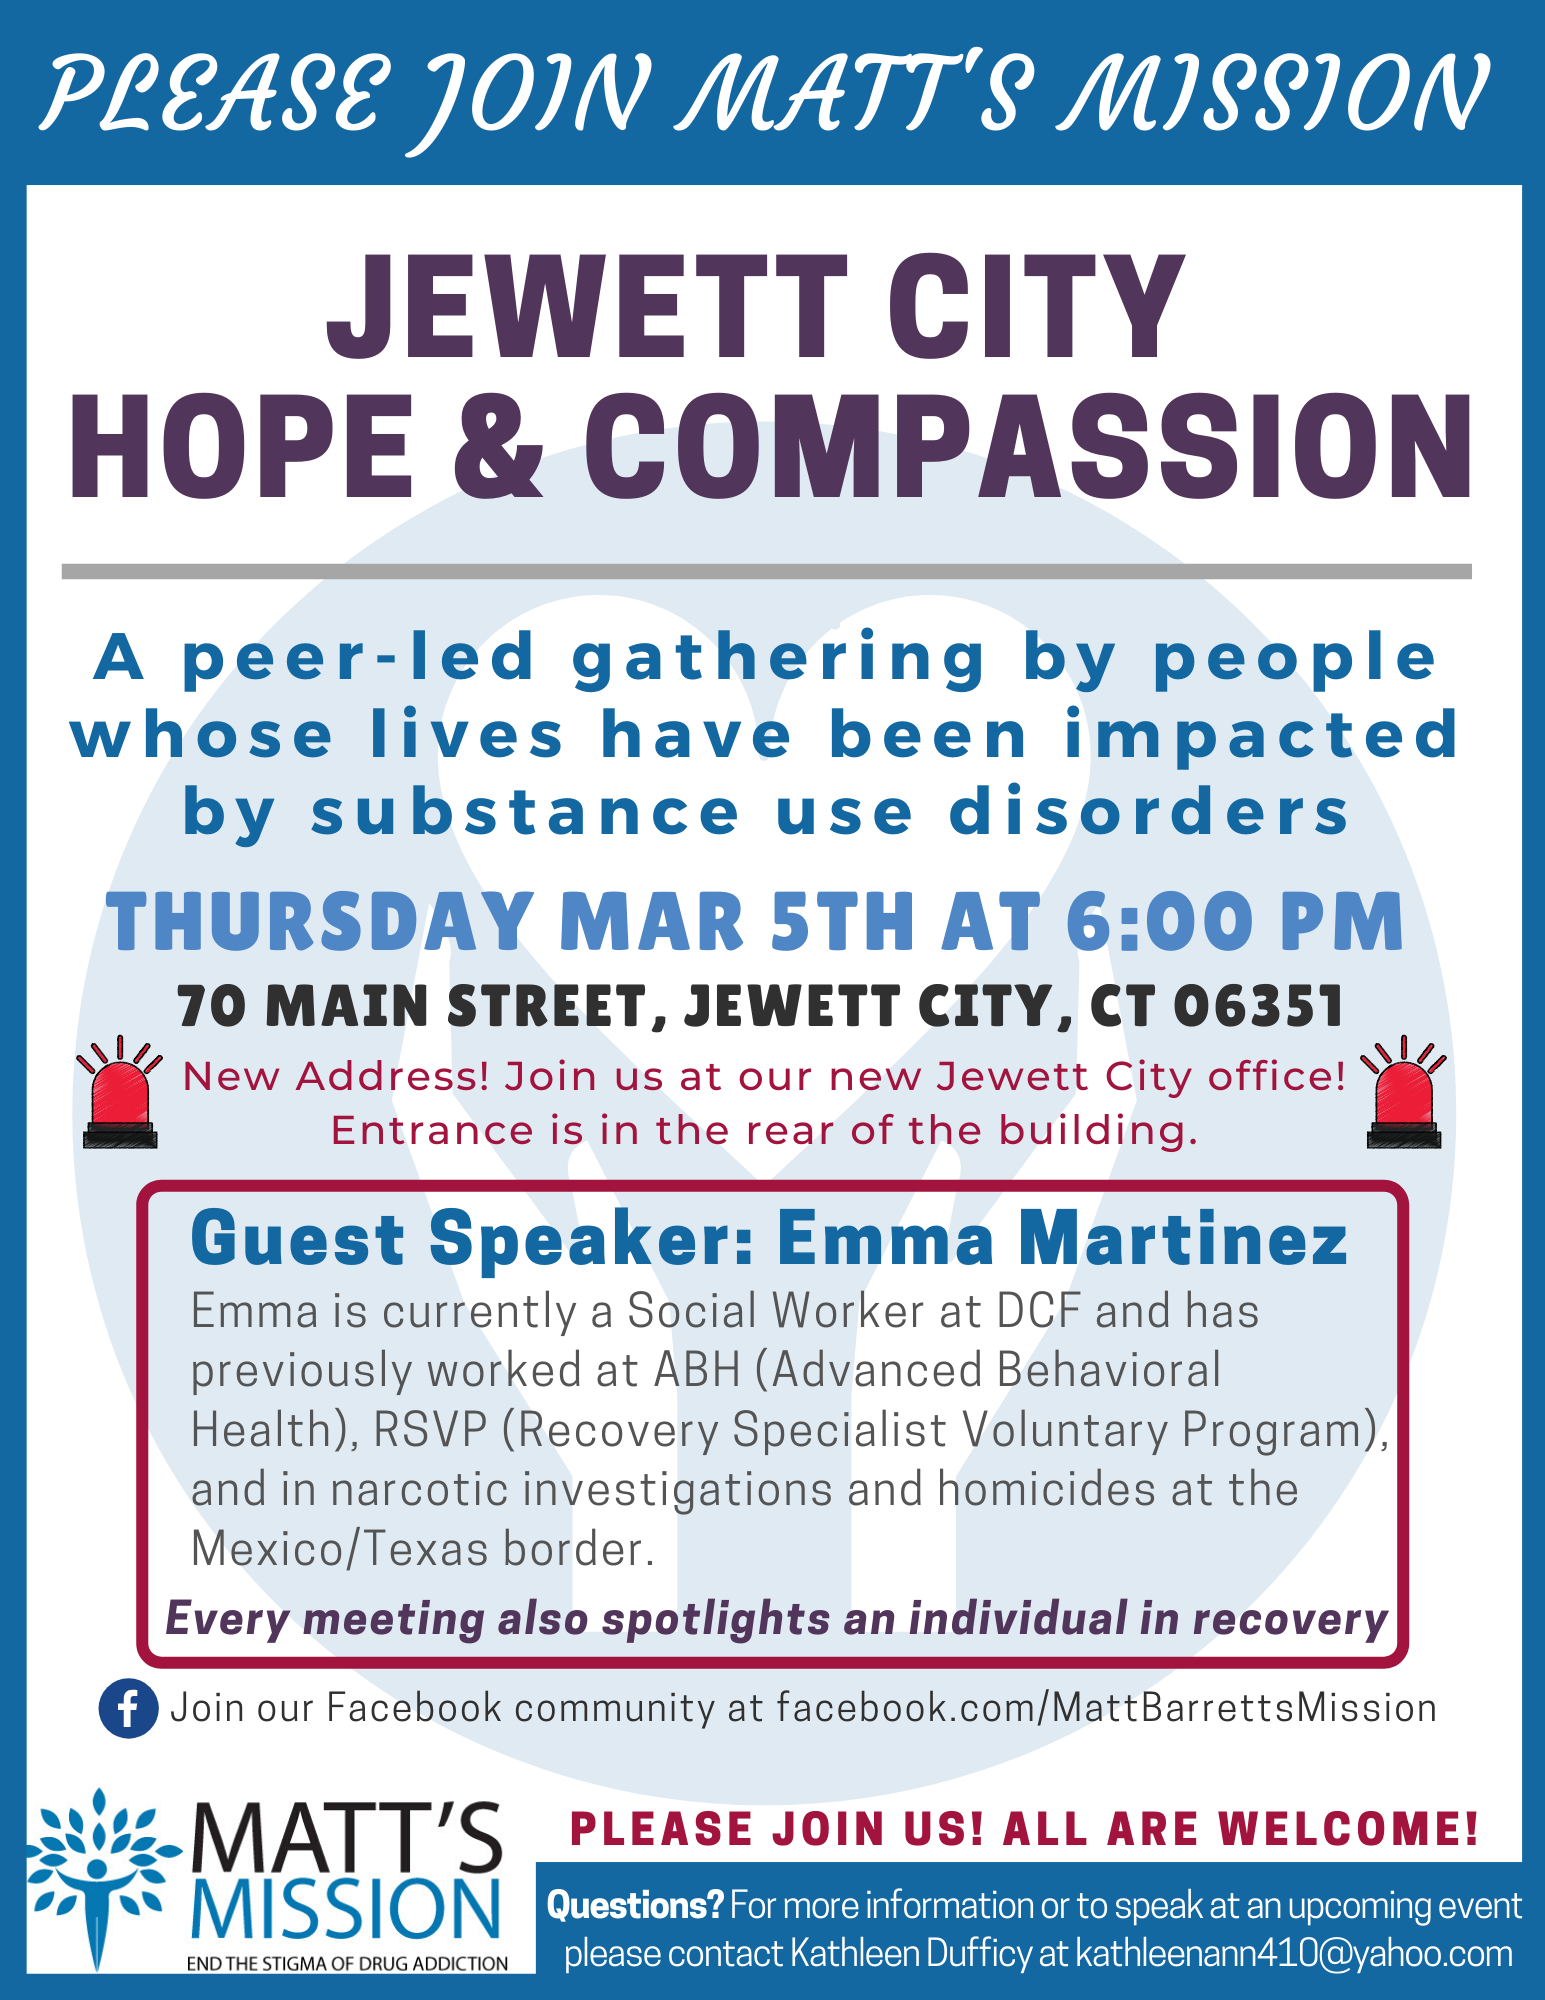 Join us for Jewett City Hope and Compassion on March 5th, 2020.